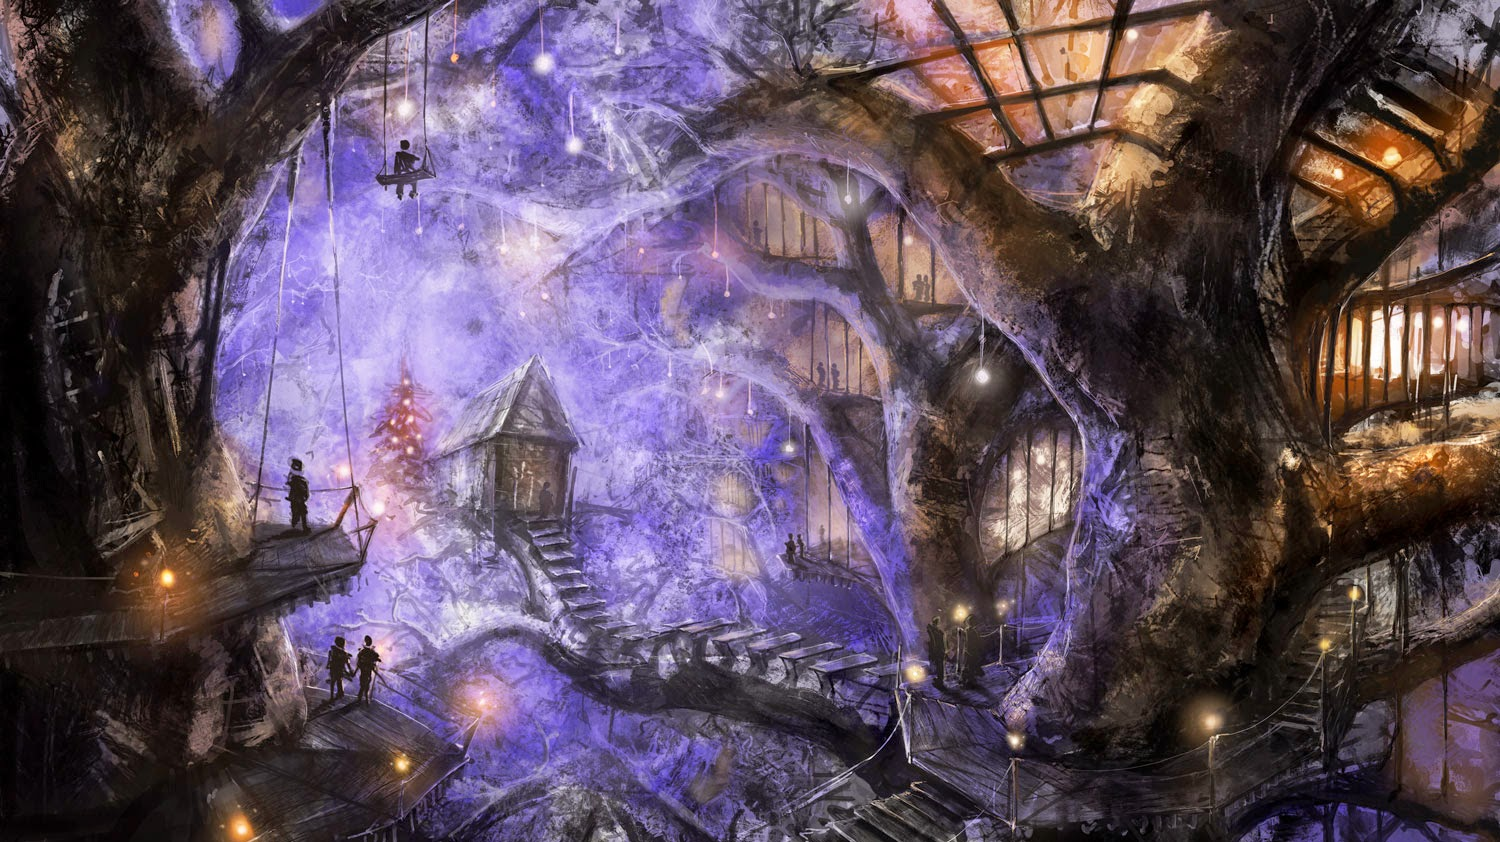 Gnome Animated Wallpaper Beautiful Tree House Fantasy Fairy Tale Images Pictures Hd